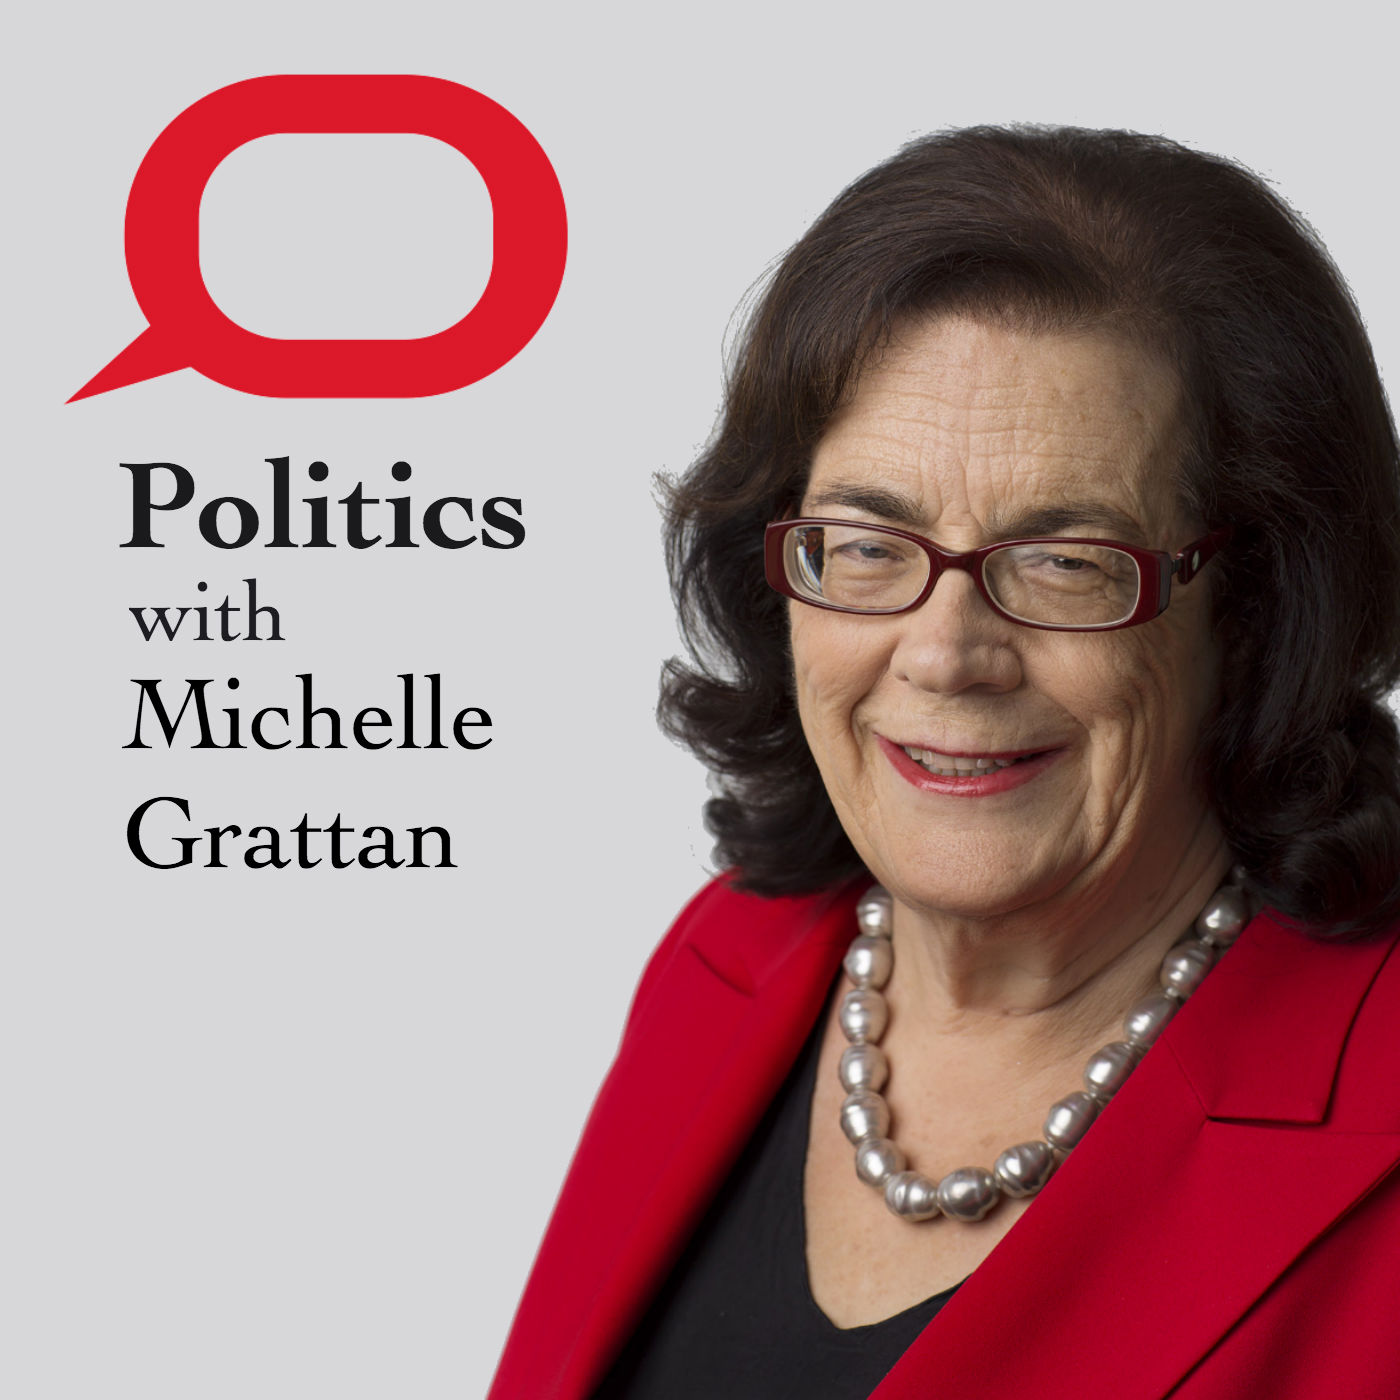 Politics with Michelle Grattan: Anne Summers on #MeToo and women in politics